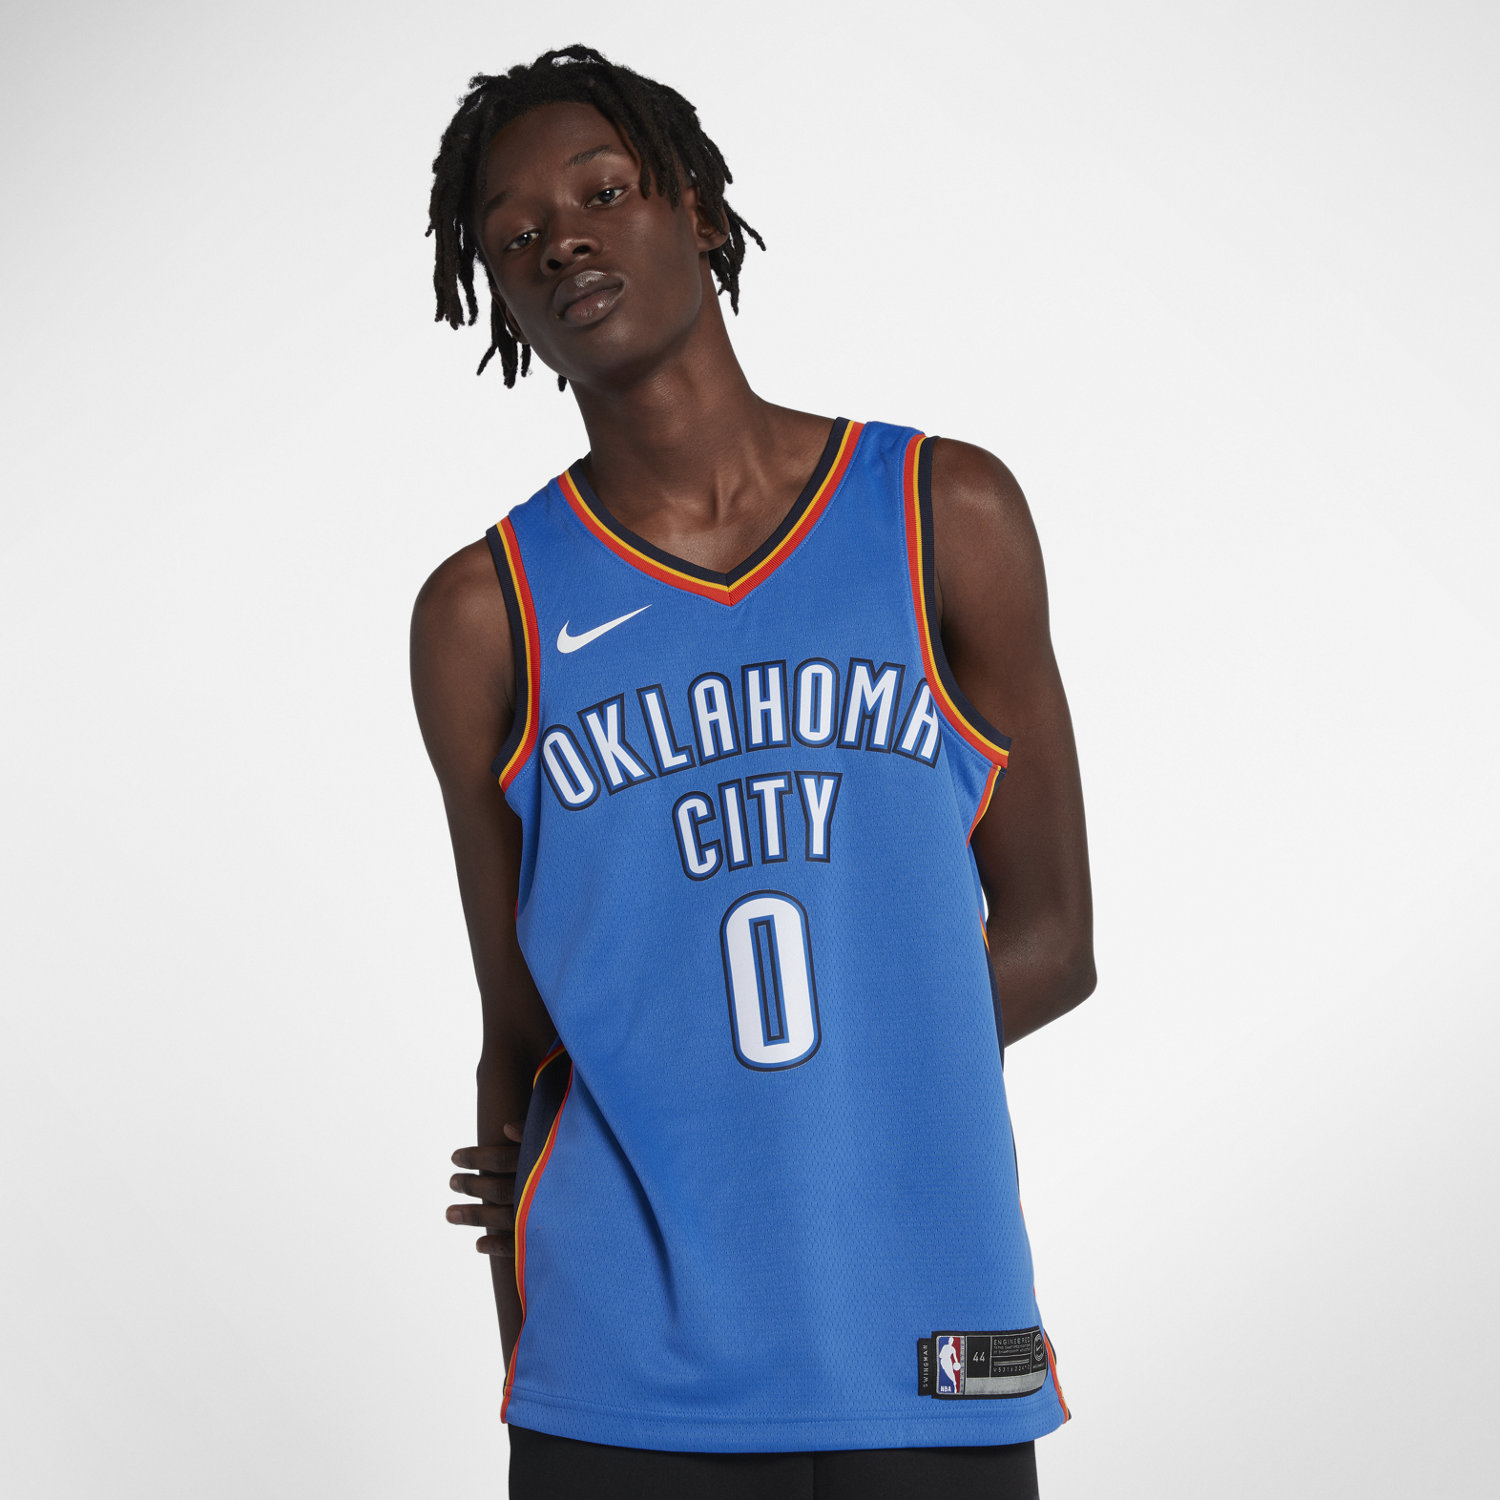 ... Russell Westbrook Icon Edition Swingman Jersey (Oklahoma City Thunder)  Mens Nike NBA Connected Jersey ... 2822f7638